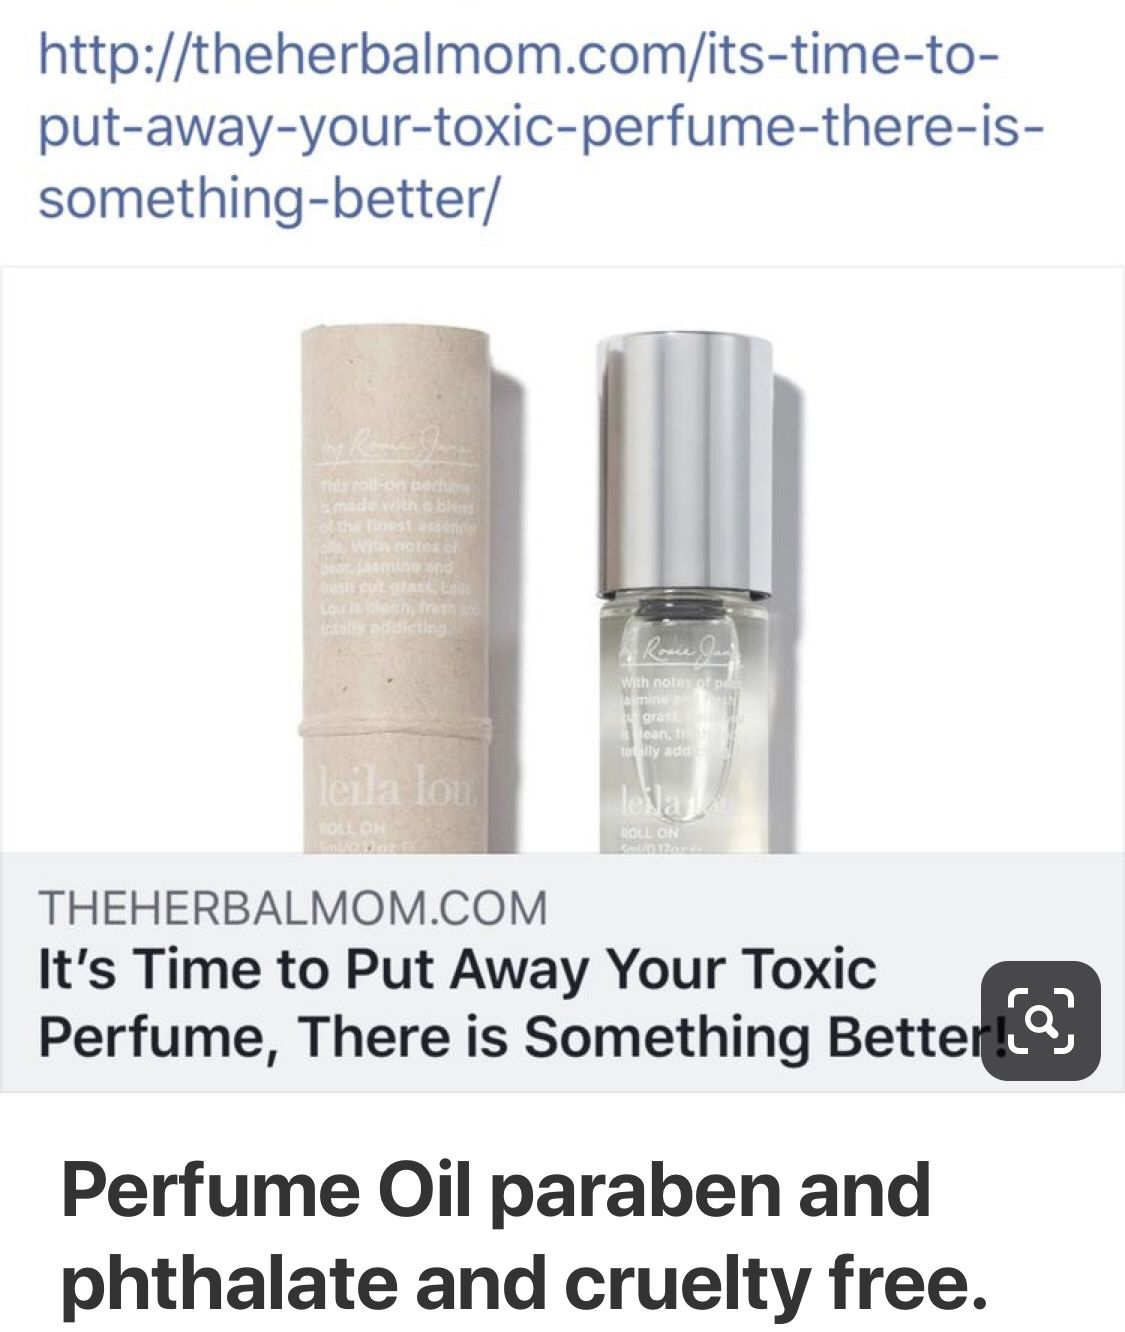 Perfume oil. Paraben and phthalate and cruelty free